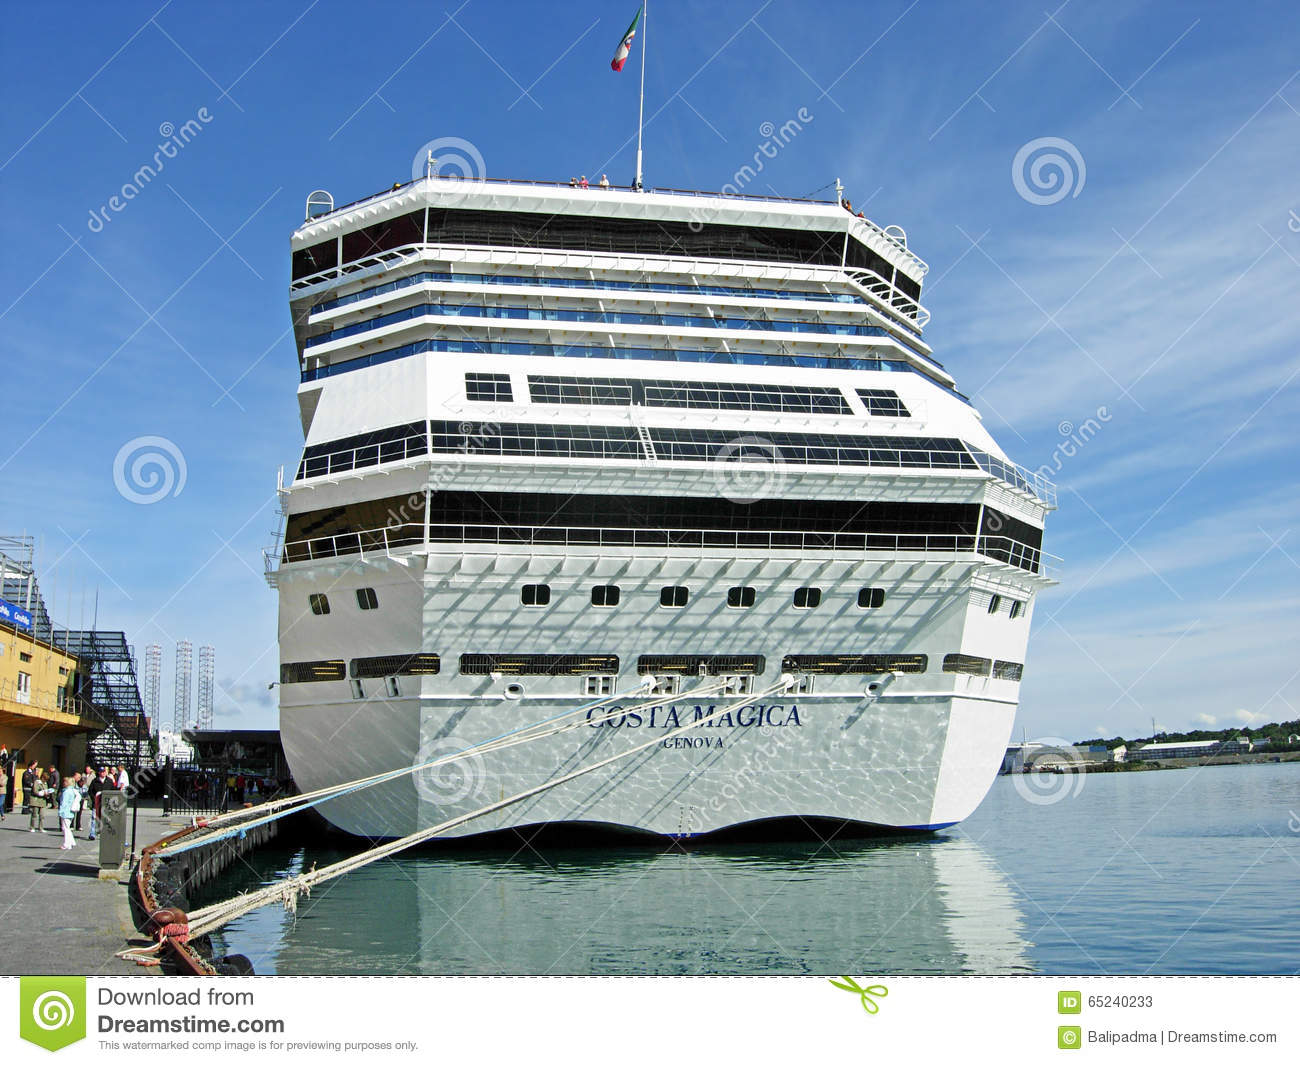 Cruise Ship Costa Magica In Stavanger (Norway) Editorial Stock.